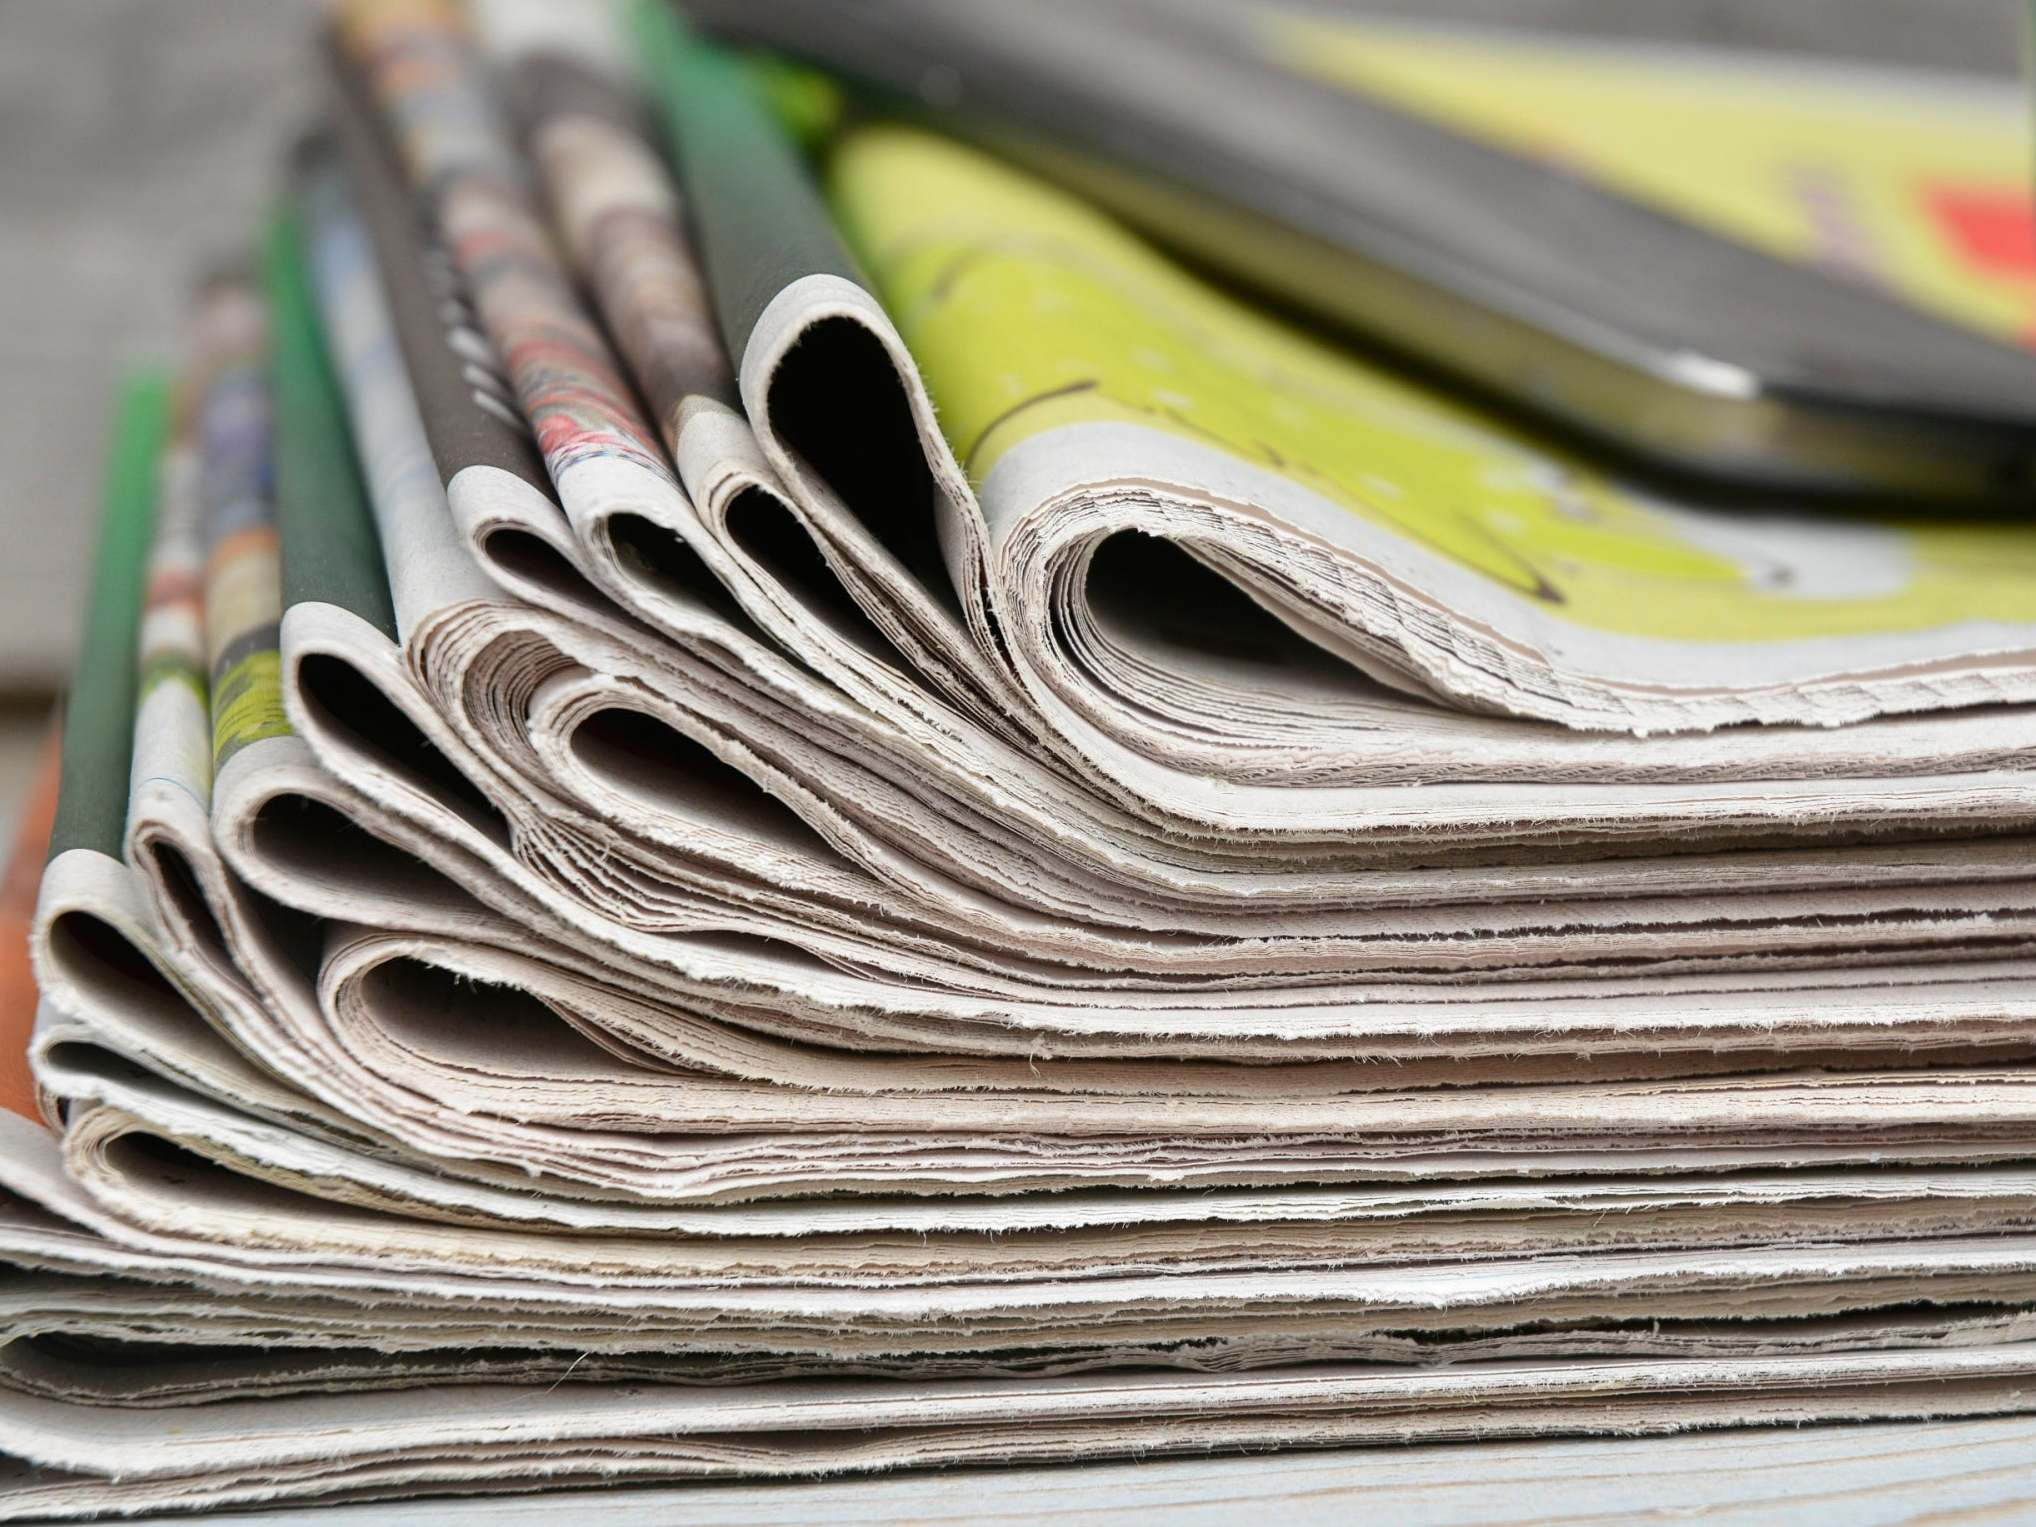 The Top 10: Newspaper corrections